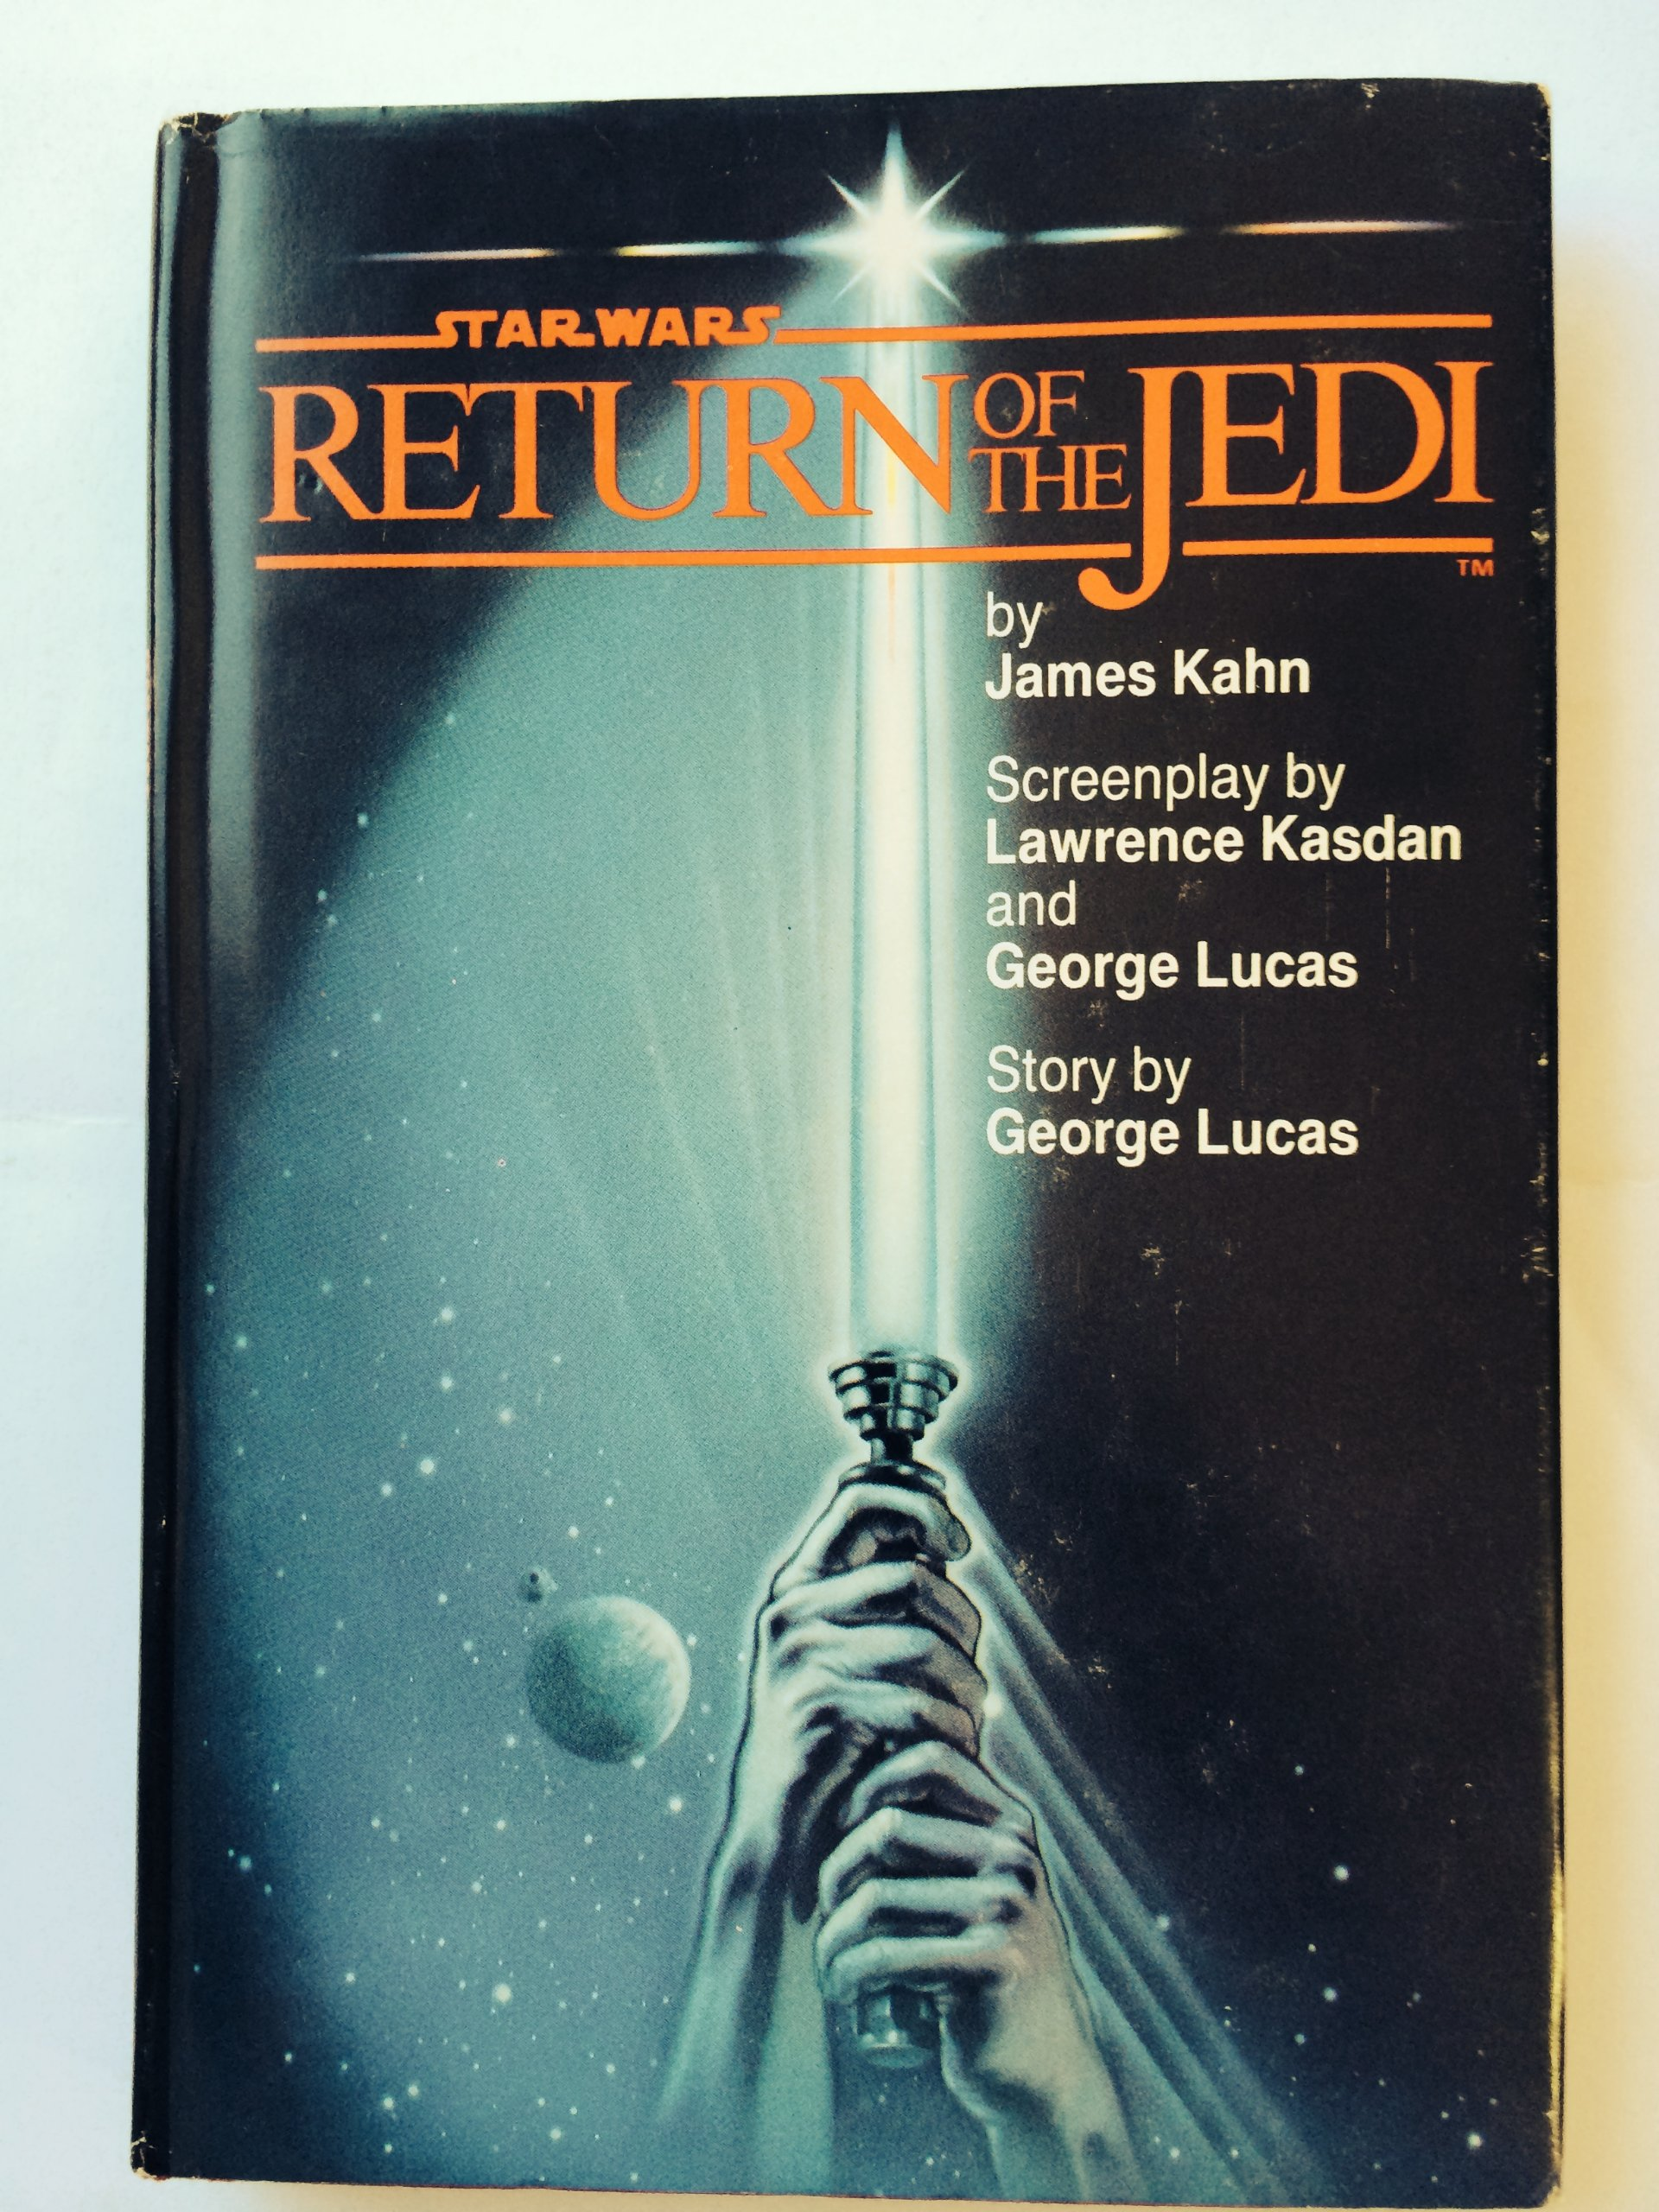 Star Wars: Return of the Jedi (Novel)